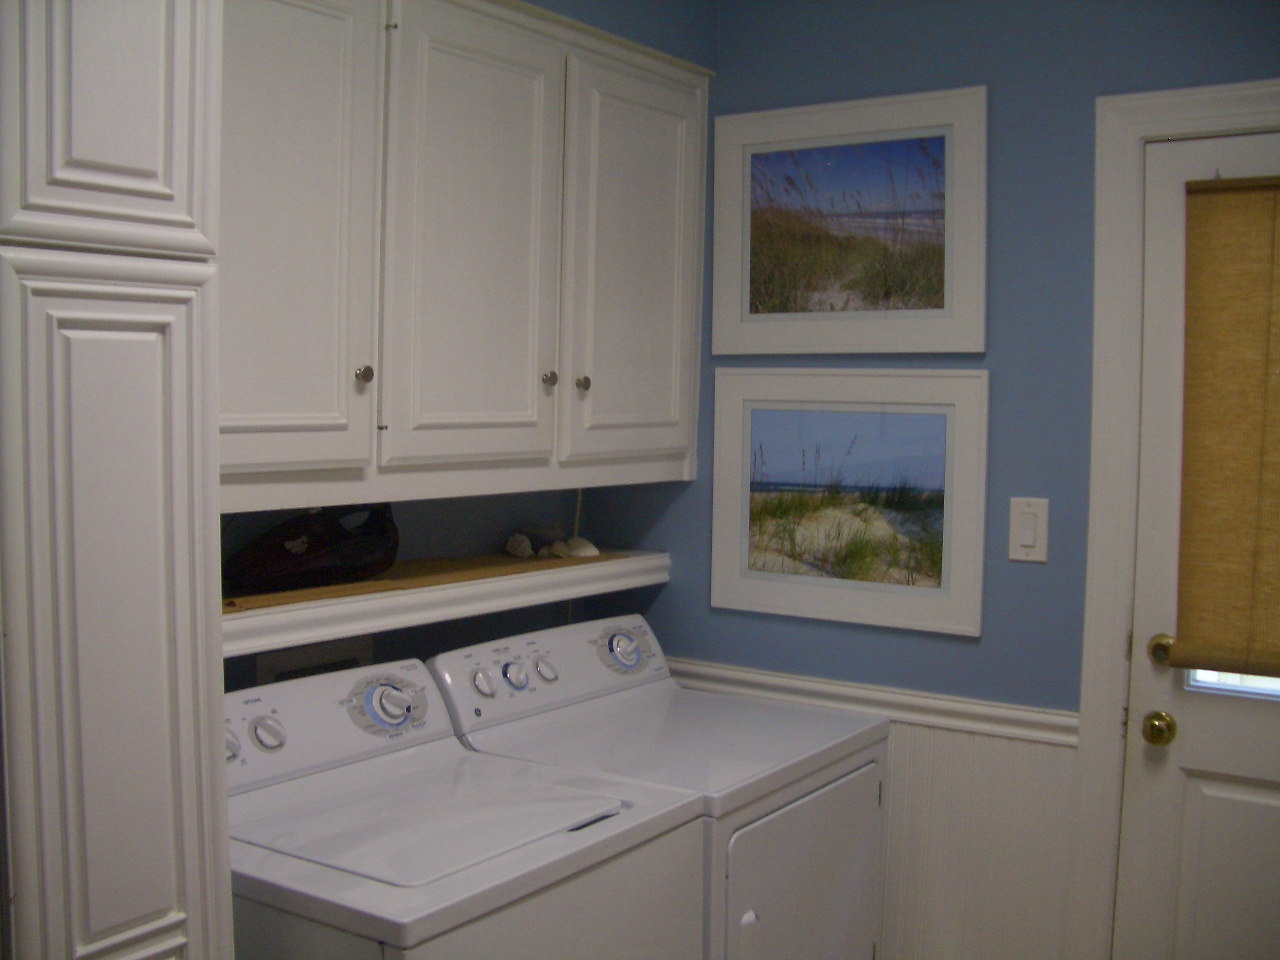 Casalupoli laundry room update over the washer dryer shelf - Laundry room shelving ideas ...